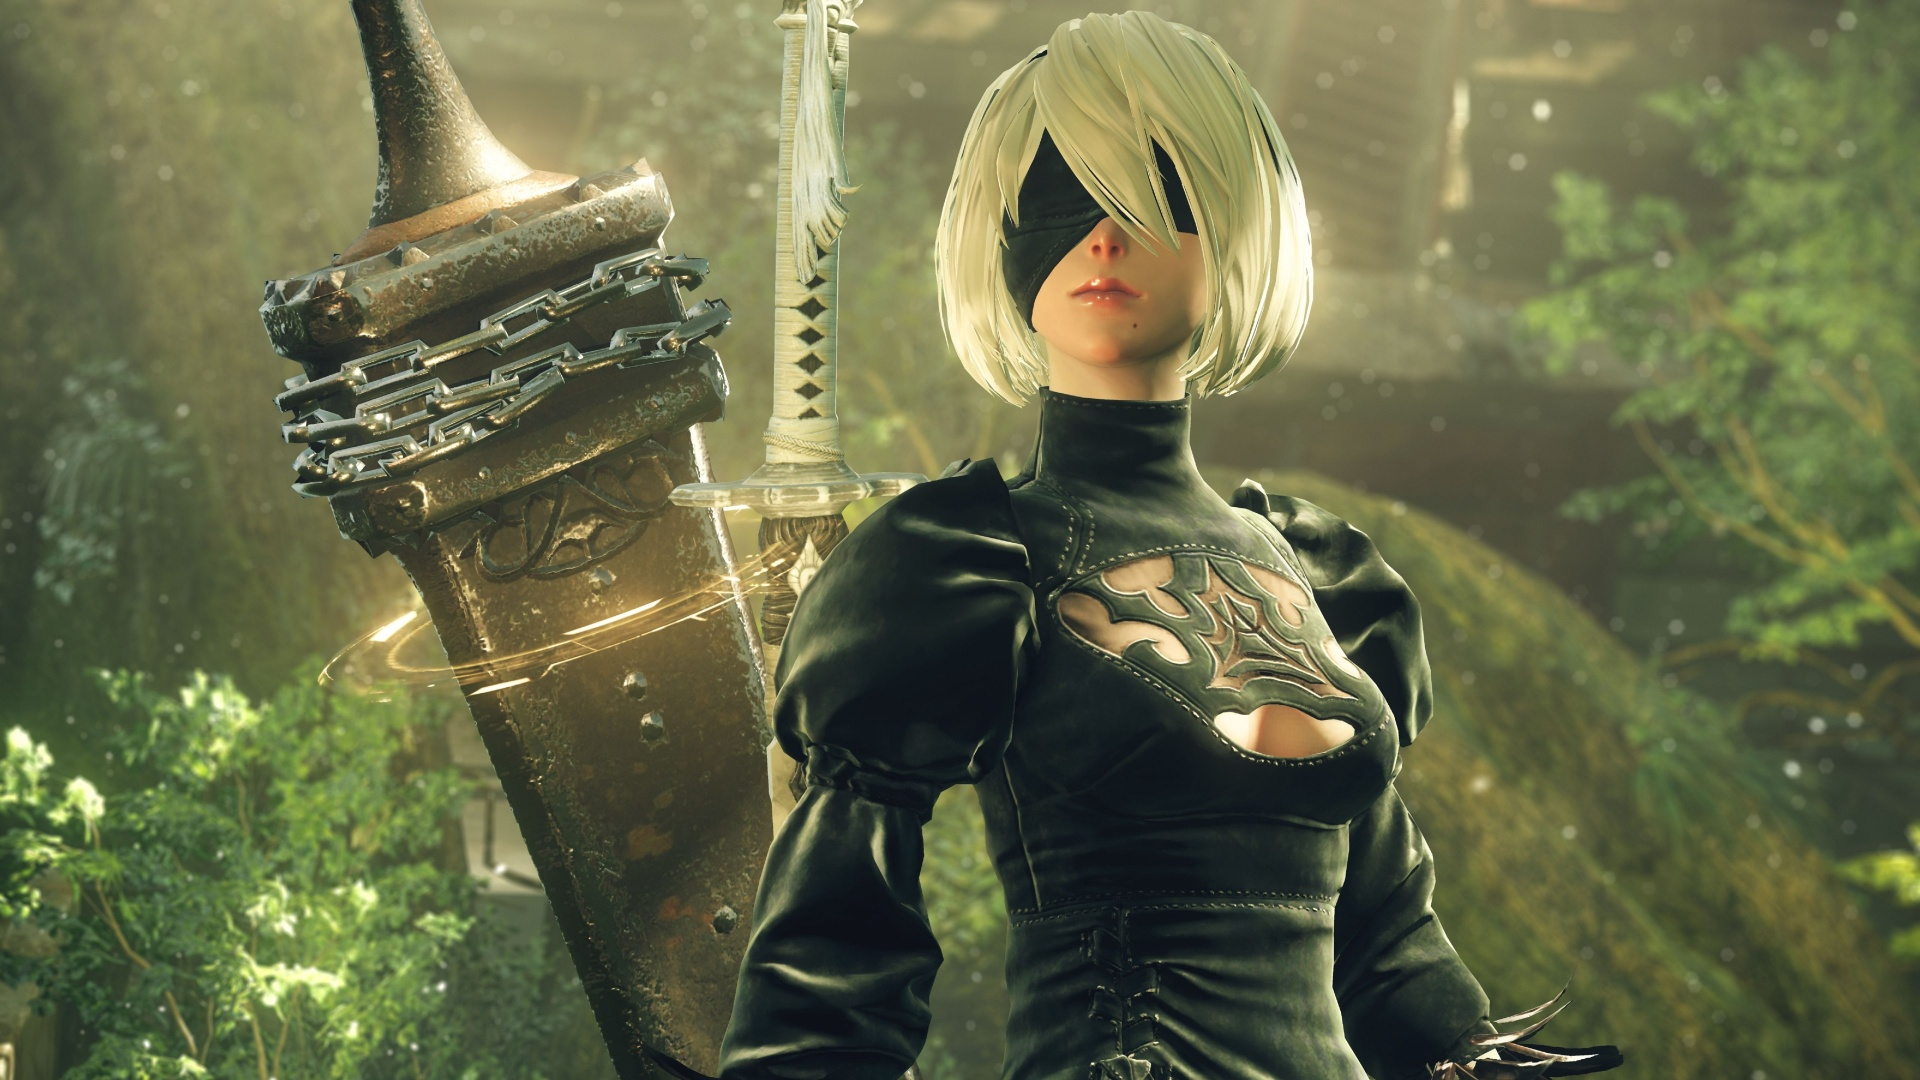 Nier Automata 5k 2b Android Girl Wallpapers 1920x1080 547895